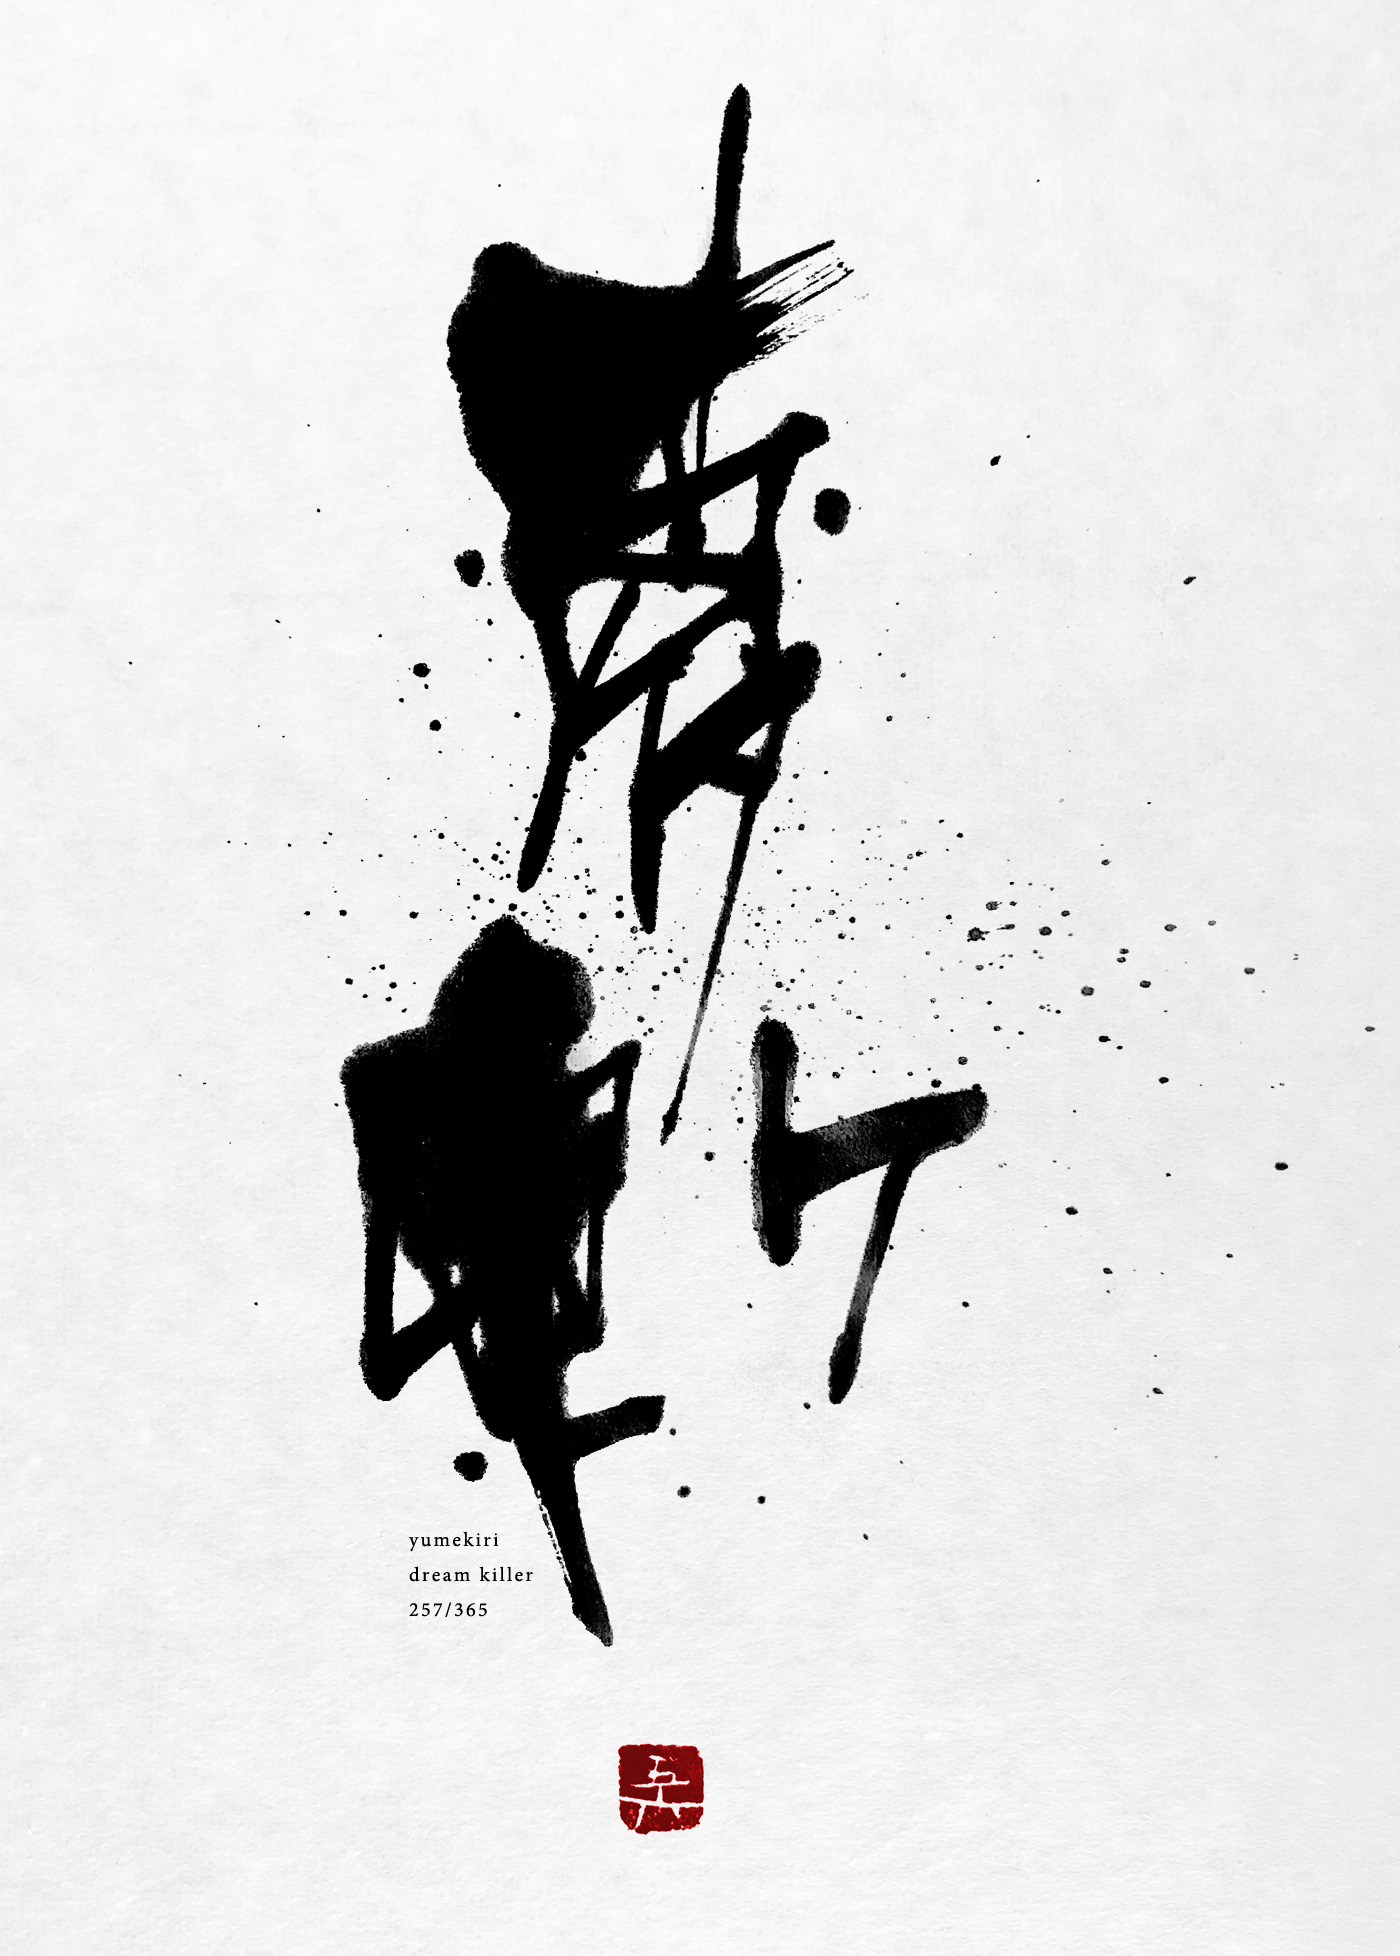 夢斬 | dream killer 書道作品 japaneseart japanese calligraphy 書家 田川悟郎 Goroh Tagawa